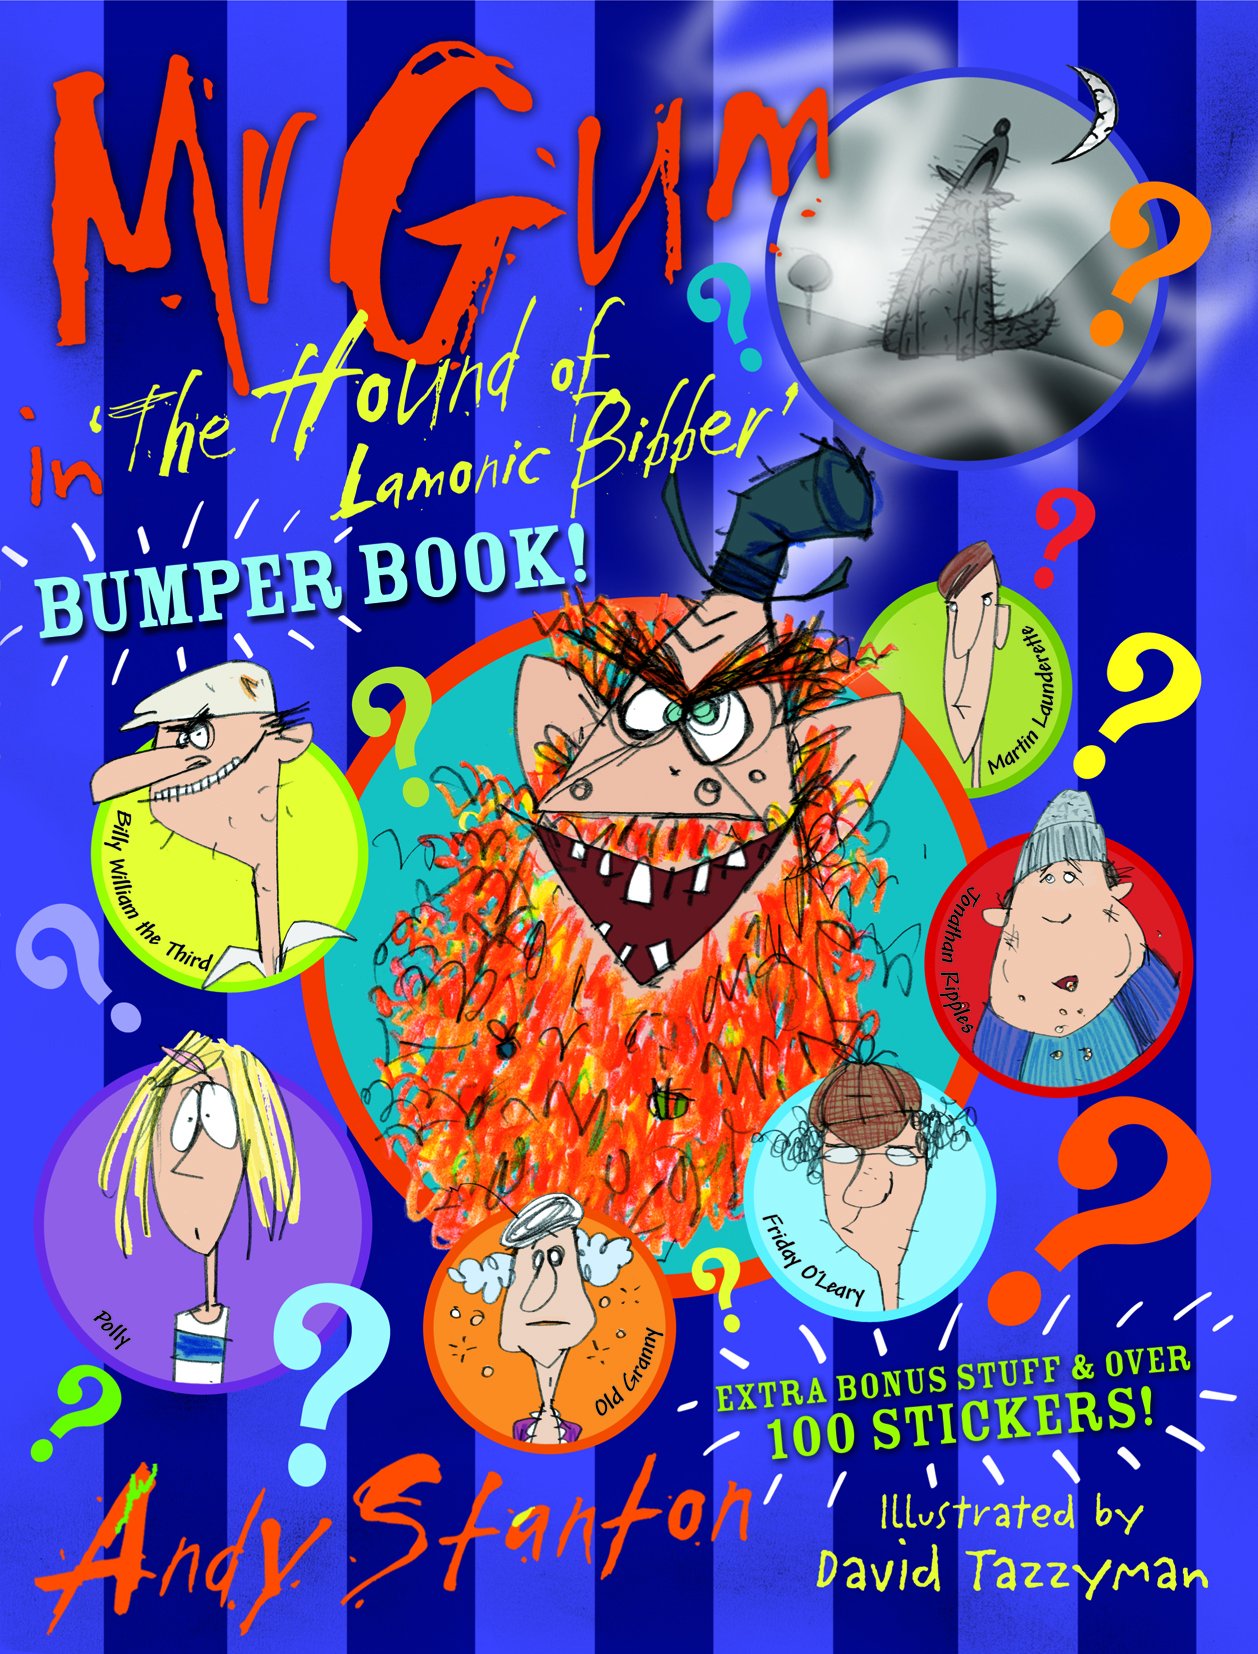 Mr Gum in The Hound of Lamonic Bibber Bumper Book